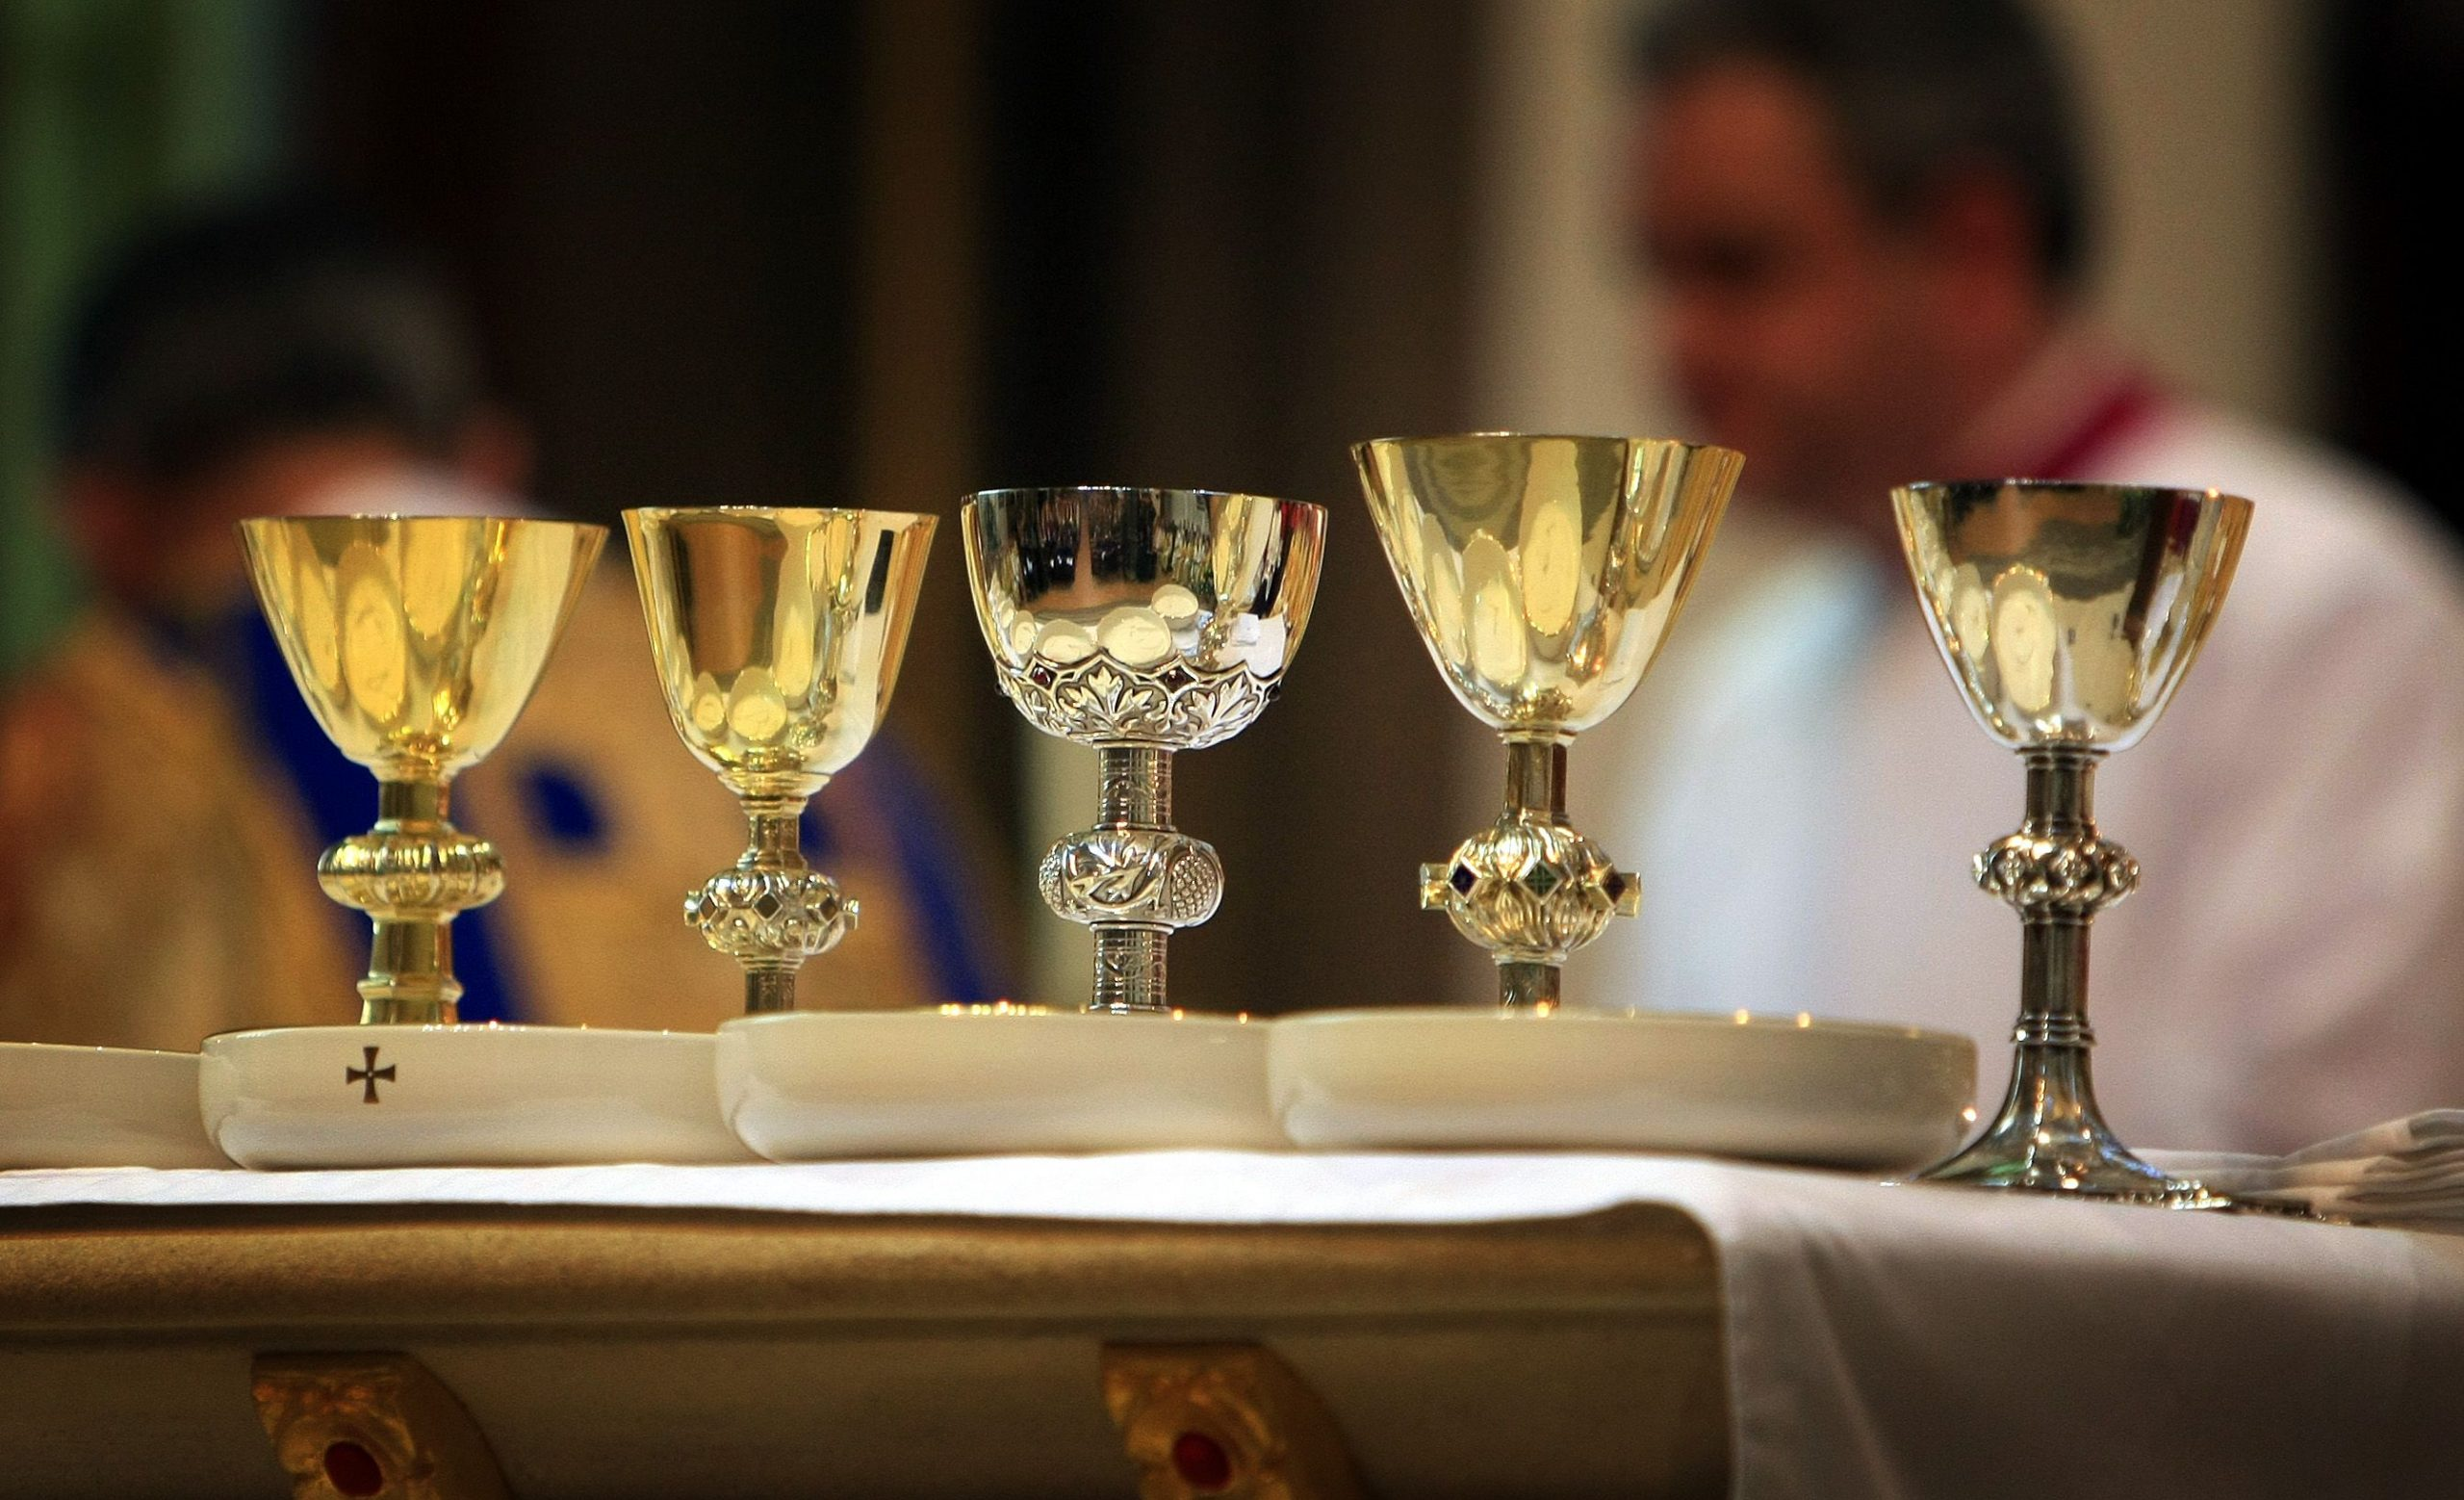 CORONAVIRUS: CHURCH BANS USE OF COMMON CUP FOR HOLY COMMUNION